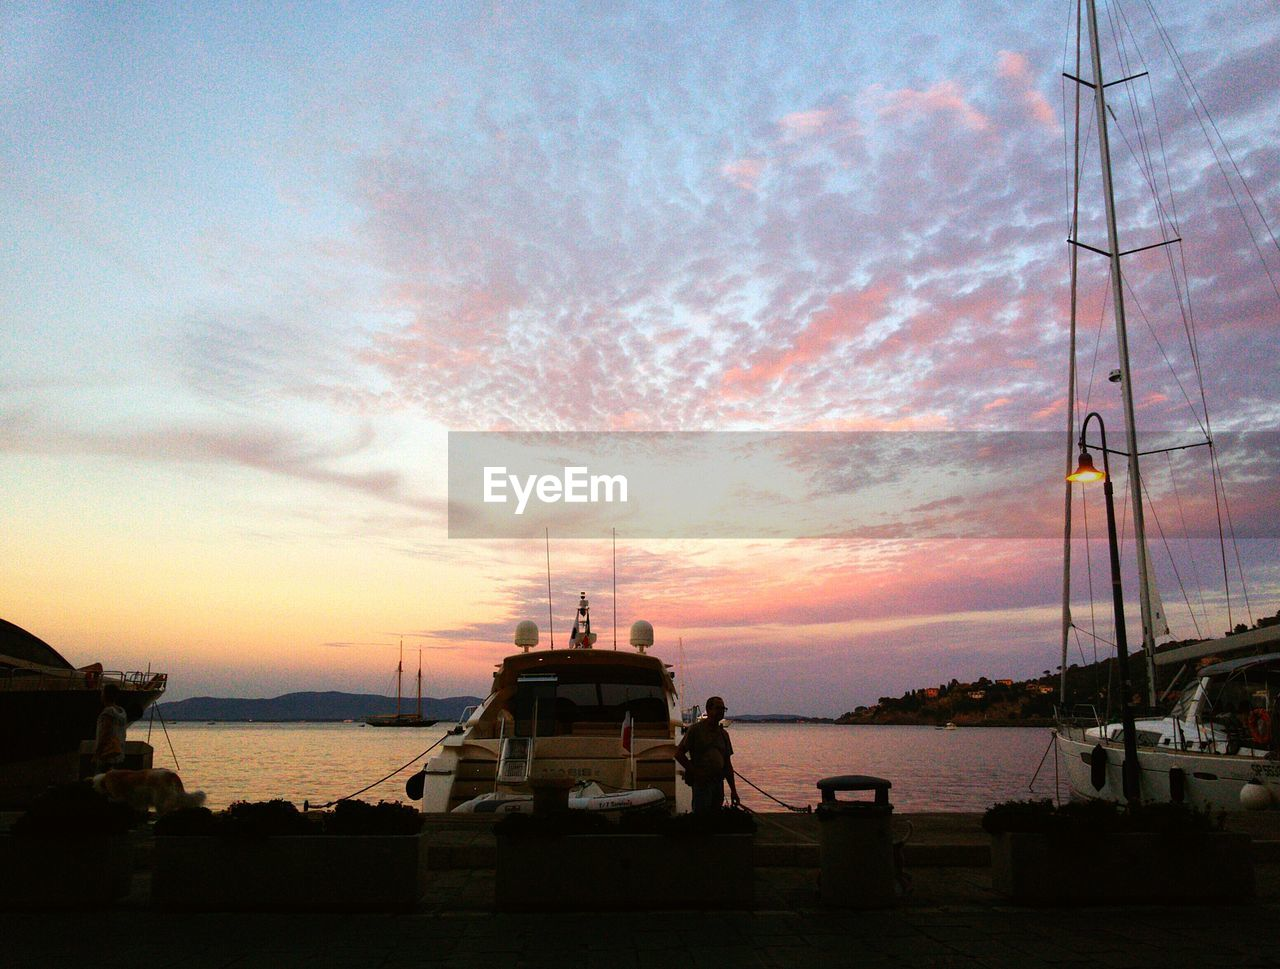 nautical vessel, sunset, sky, sea, transportation, water, cloud - sky, mode of transport, boat, nature, moored, harbor, orange color, beauty in nature, scenics, outdoors, mast, built structure, tranquility, tranquil scene, travel destinations, yacht, travel, ship, no people, silhouette, architecture, sailboat, building exterior, horizon over water, sailing, sailing ship, day